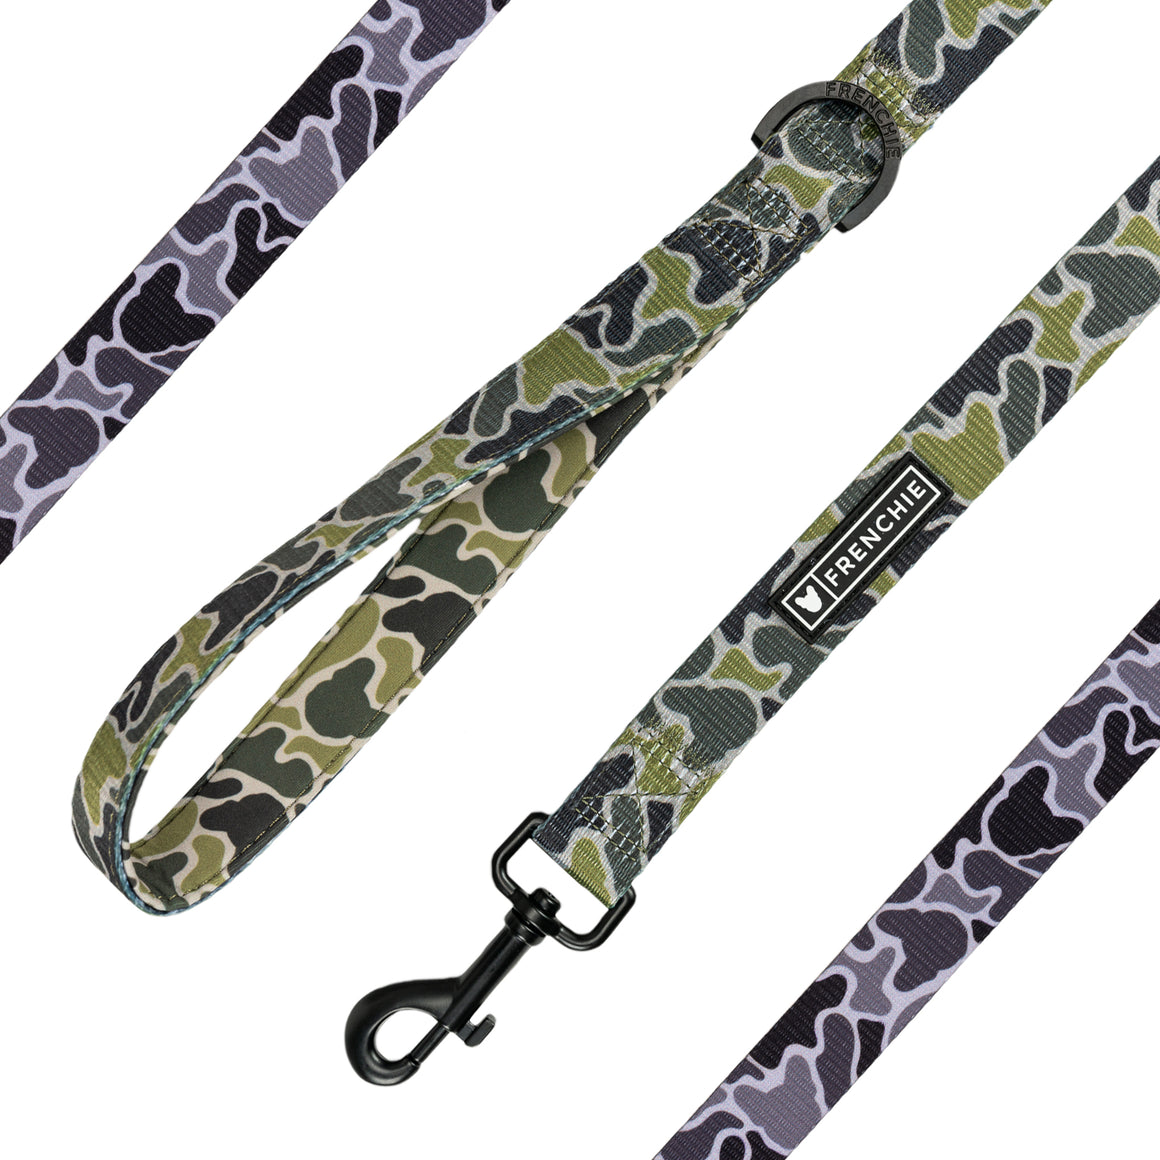 Frenchie Comfort Leash - Green Frenchie Camo - Frenchie Bulldog - Shop Harnesses for French Bulldogs - Shop French Bulldog Harness - Harnesses for Pugs